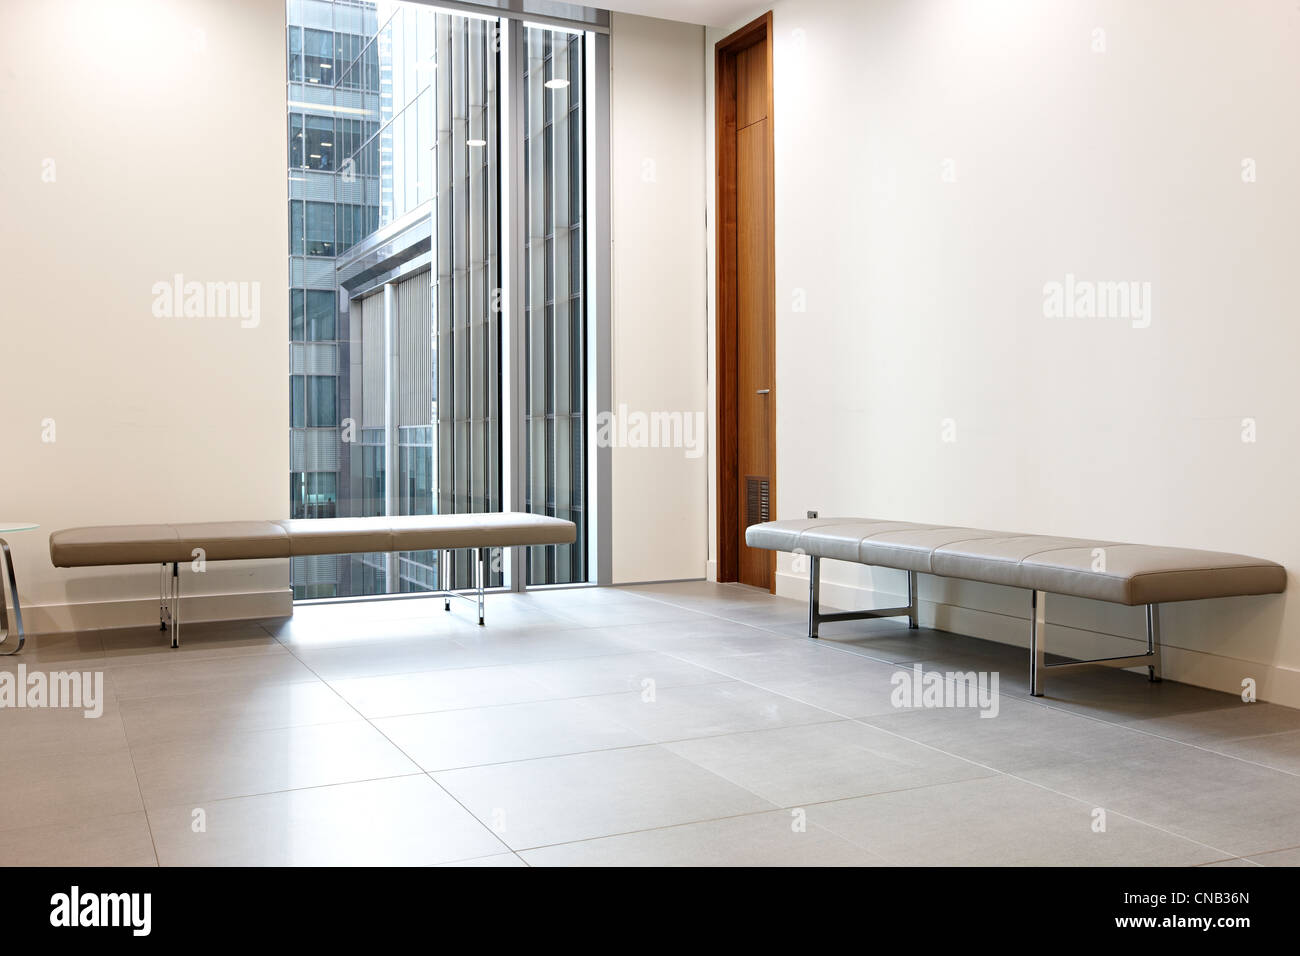 bank reception benches window city waiting room Stock Photo